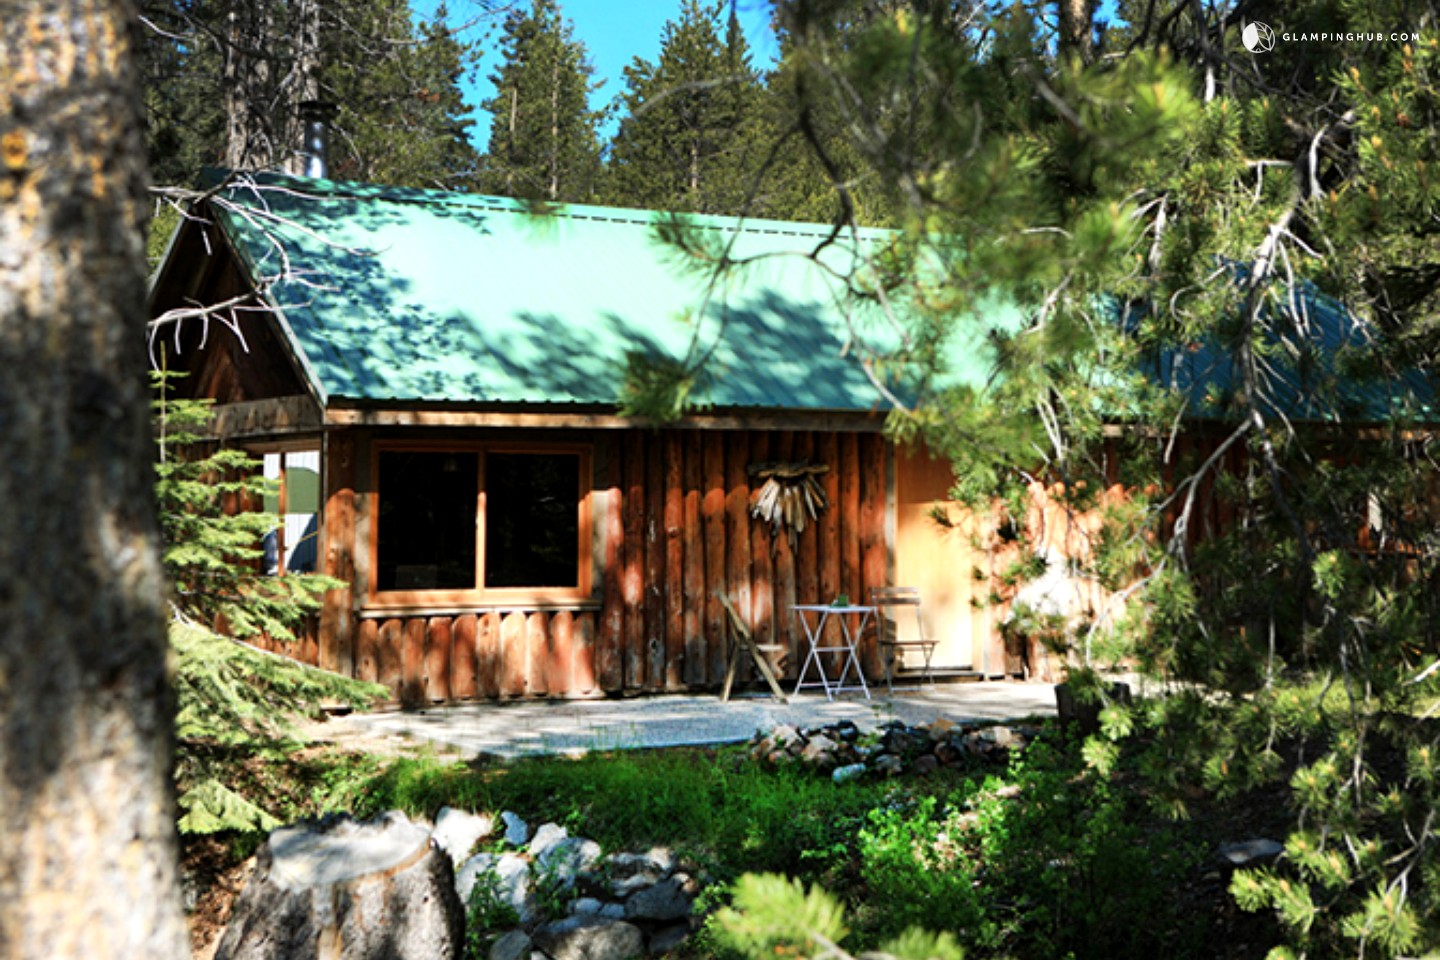 Log cabin next to yosemite national park california for Yosemite national park cabin rentals